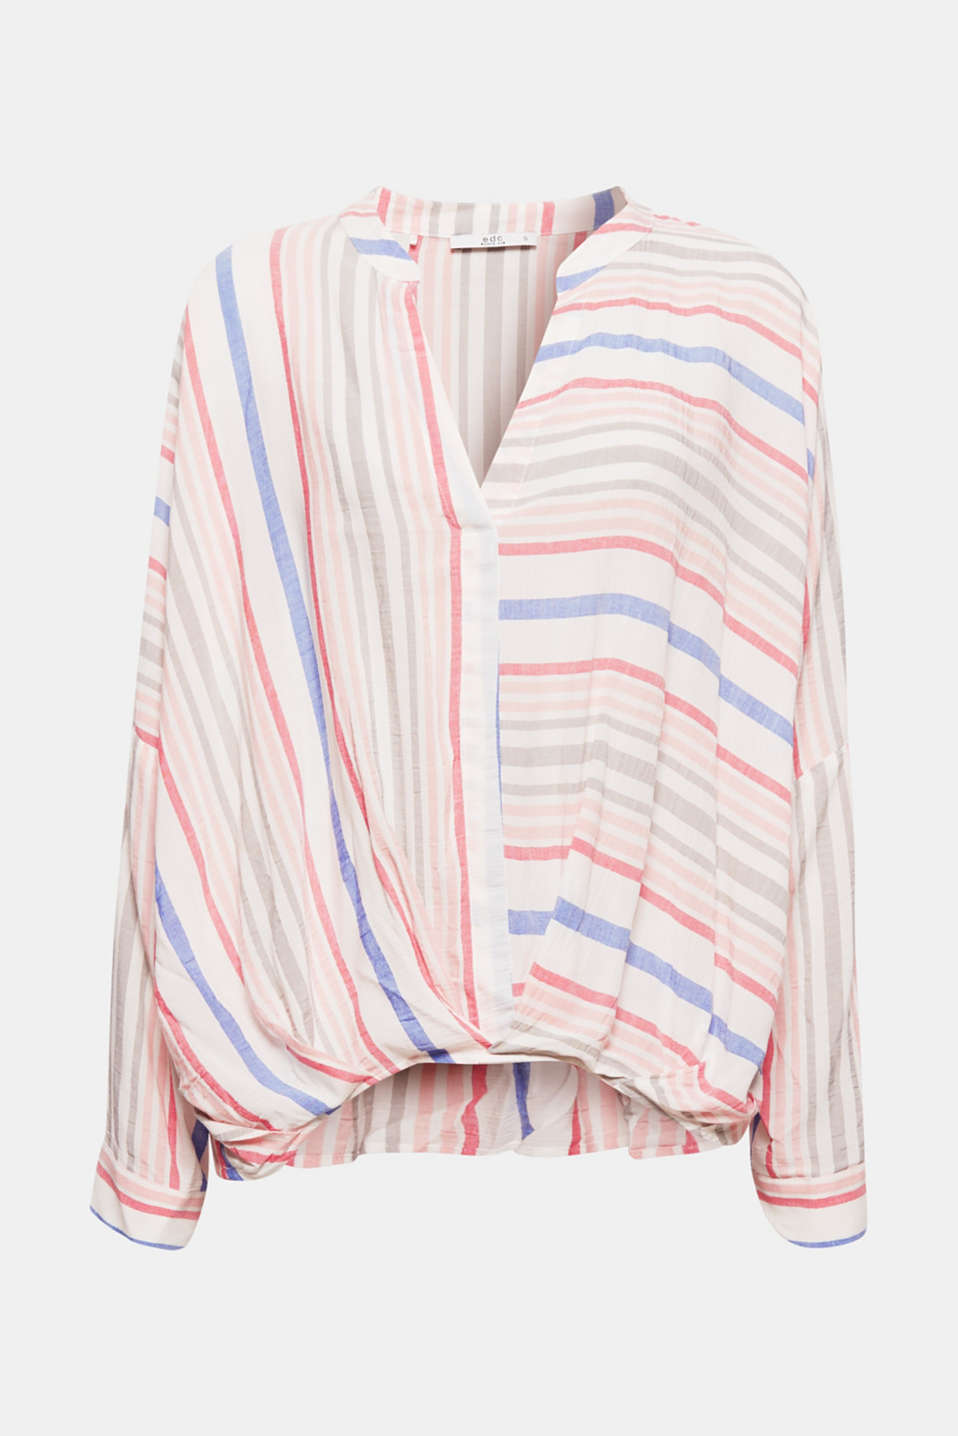 Airy, lightweight fabric, fresh stripes and casual turn-ups make this blouse an ideal partner to relaxed summer looks.